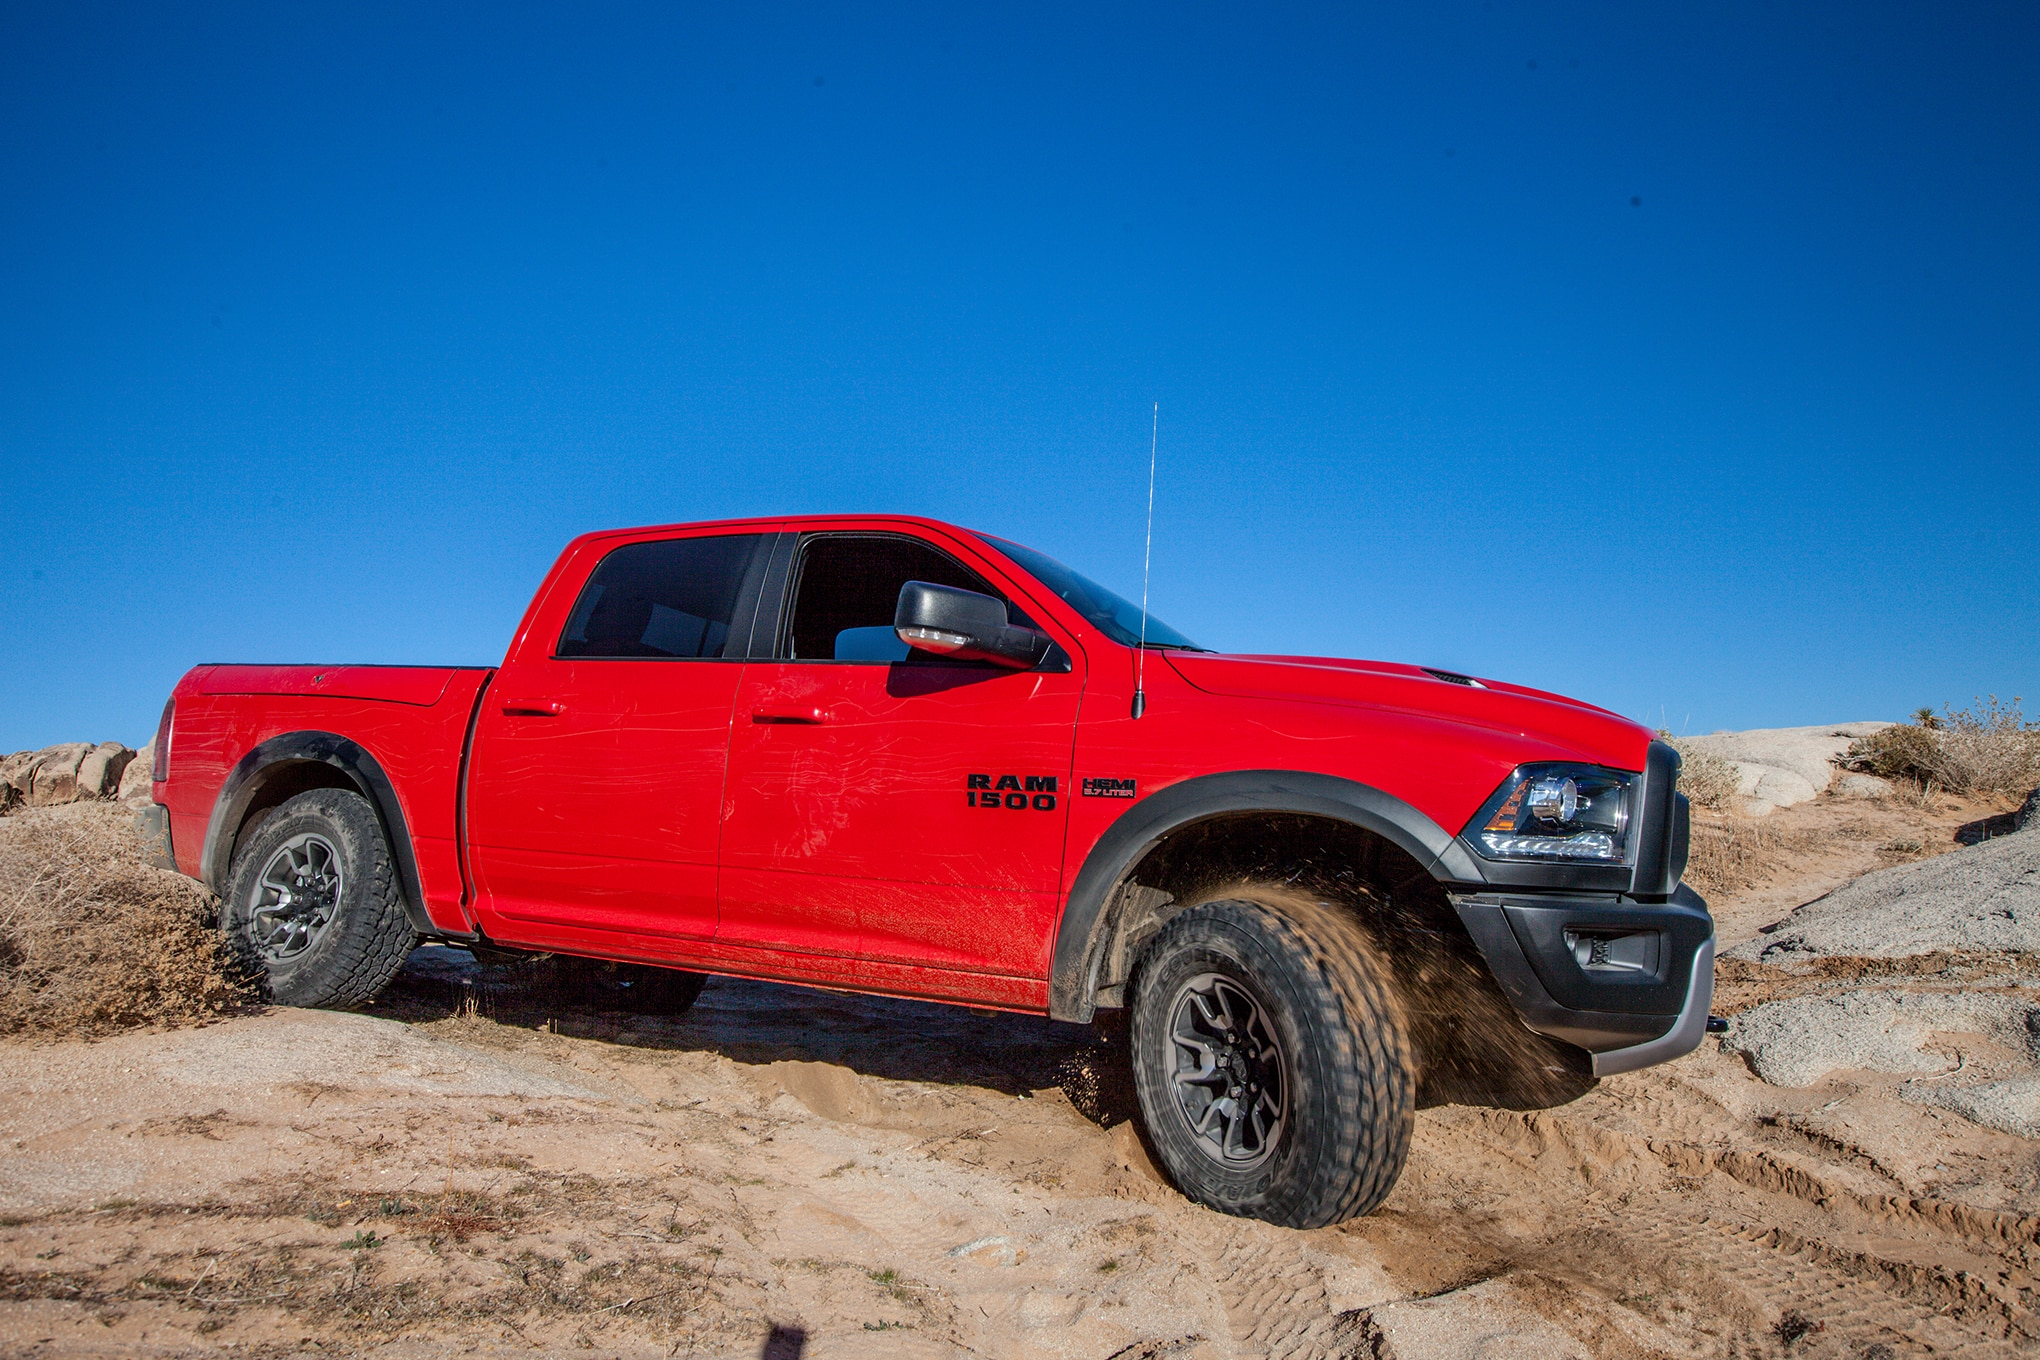 001 ram rebel lead photo